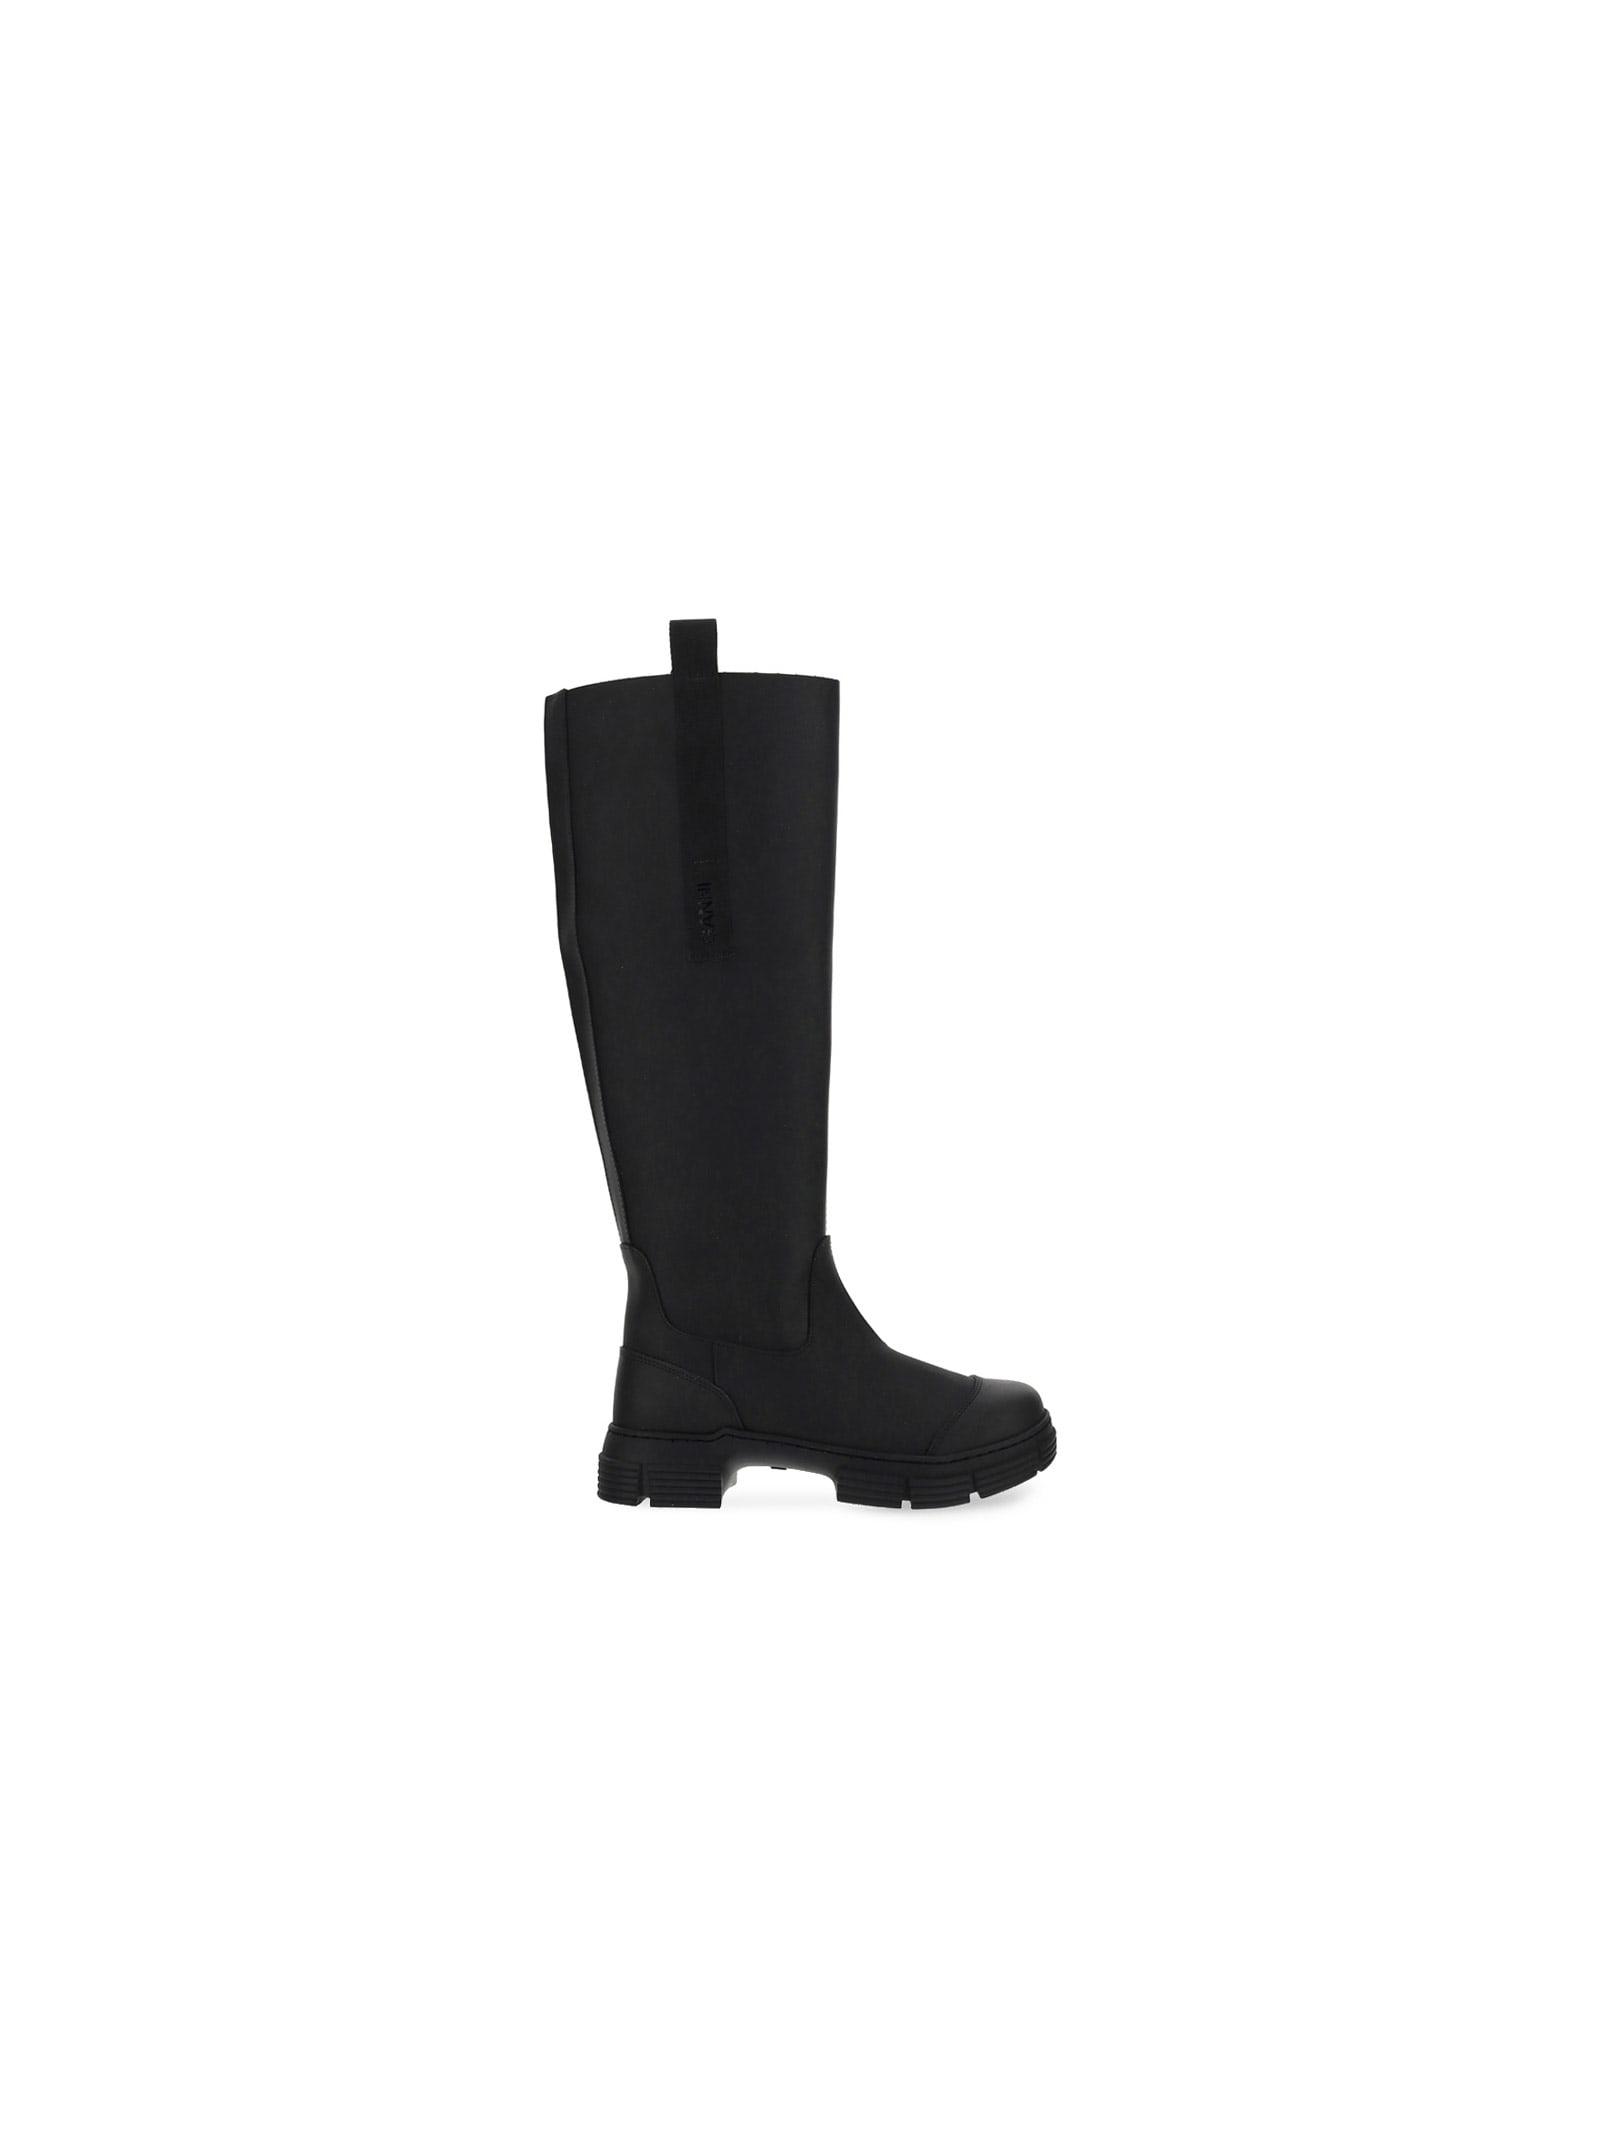 Ganni Leathers RUBBER BOOTS